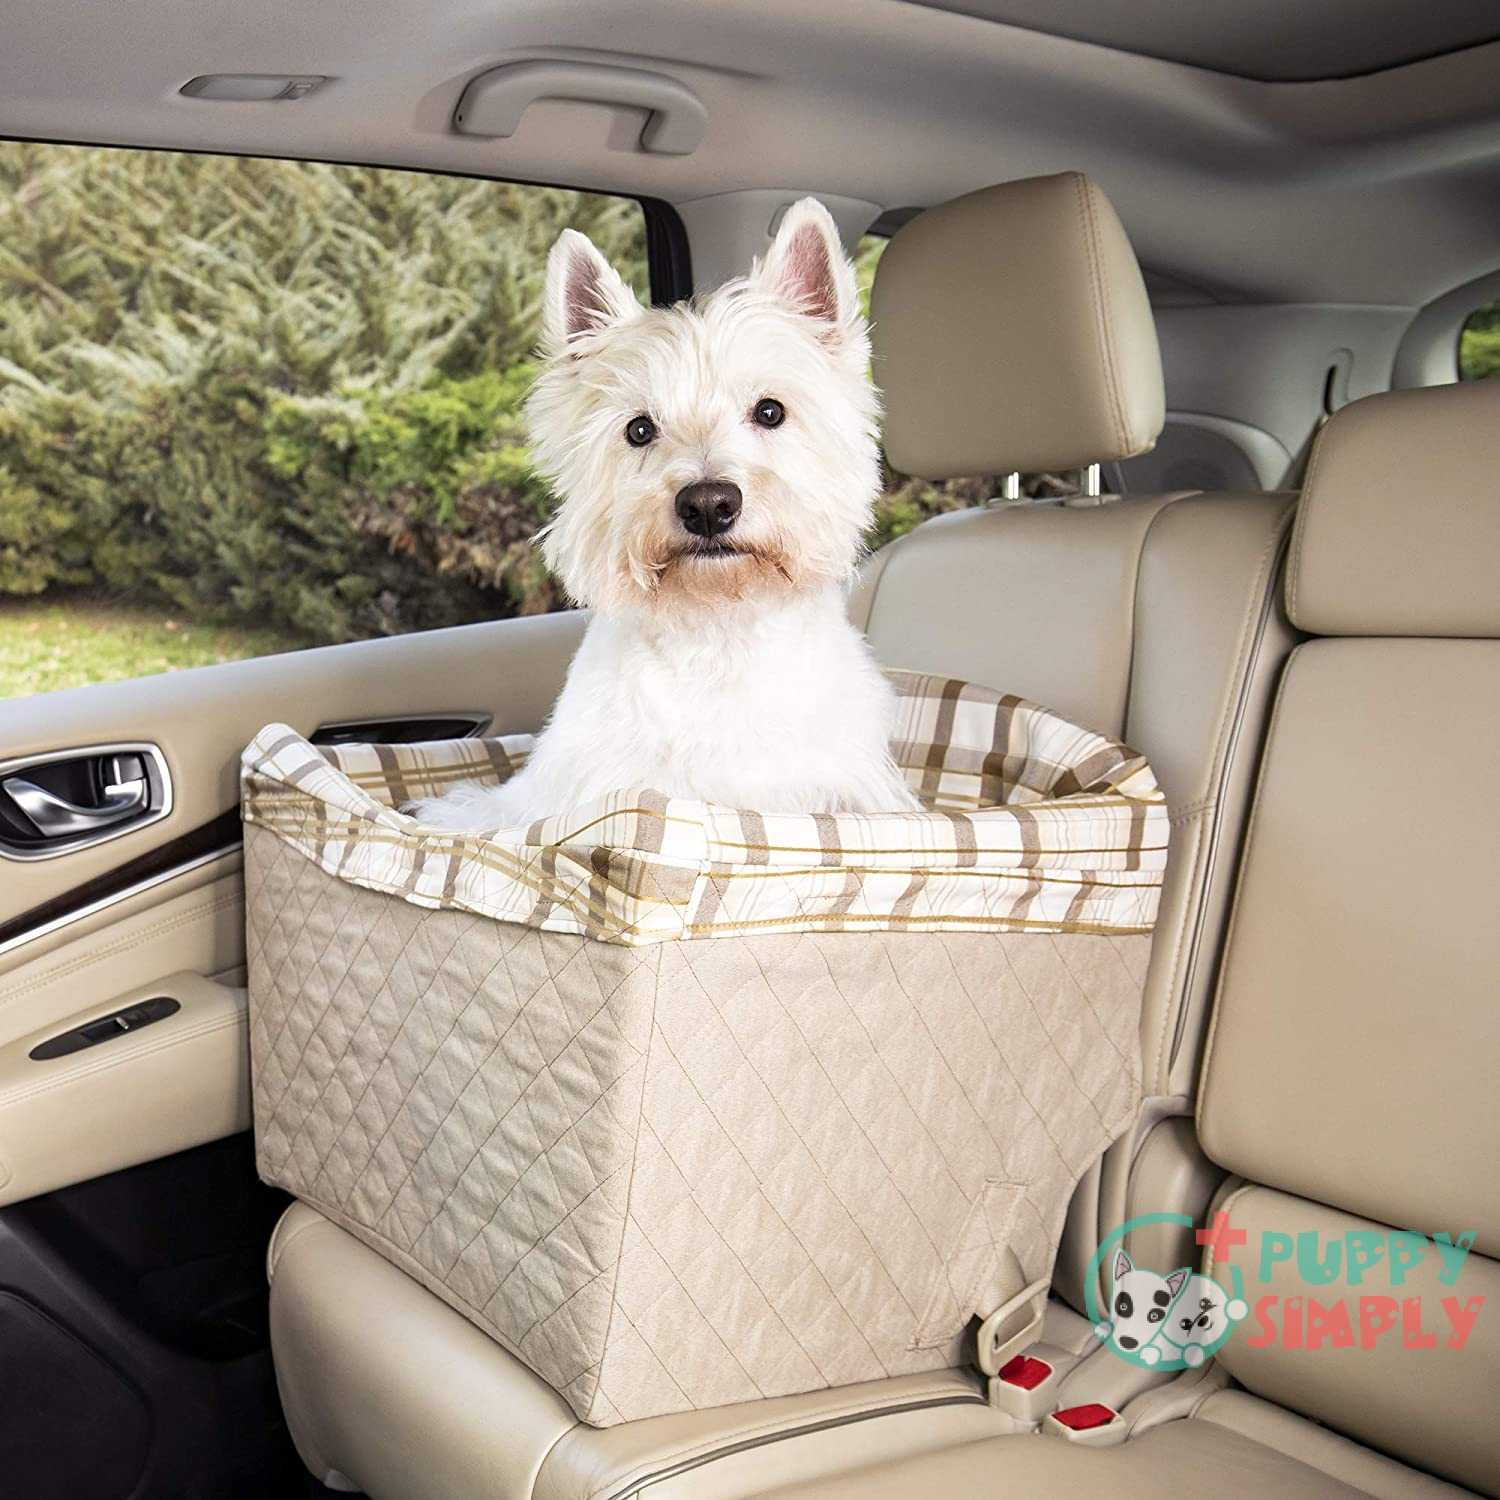 PetSafe Happy Ride Jumbo Booster